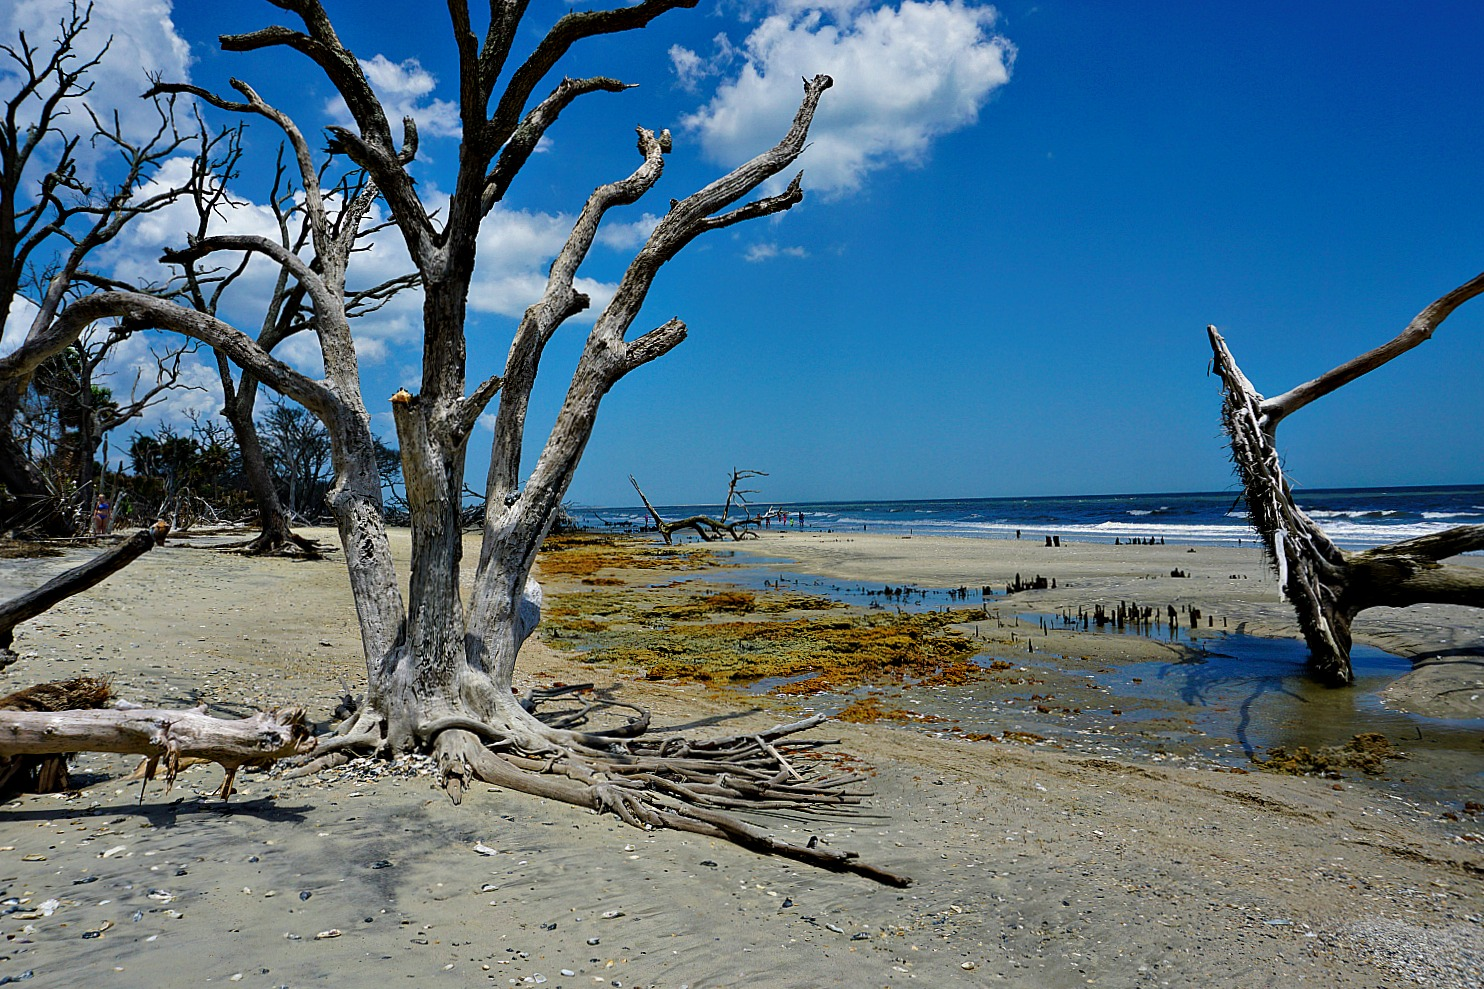 Boneyard Beach at Big Talbot State Park, Florida.